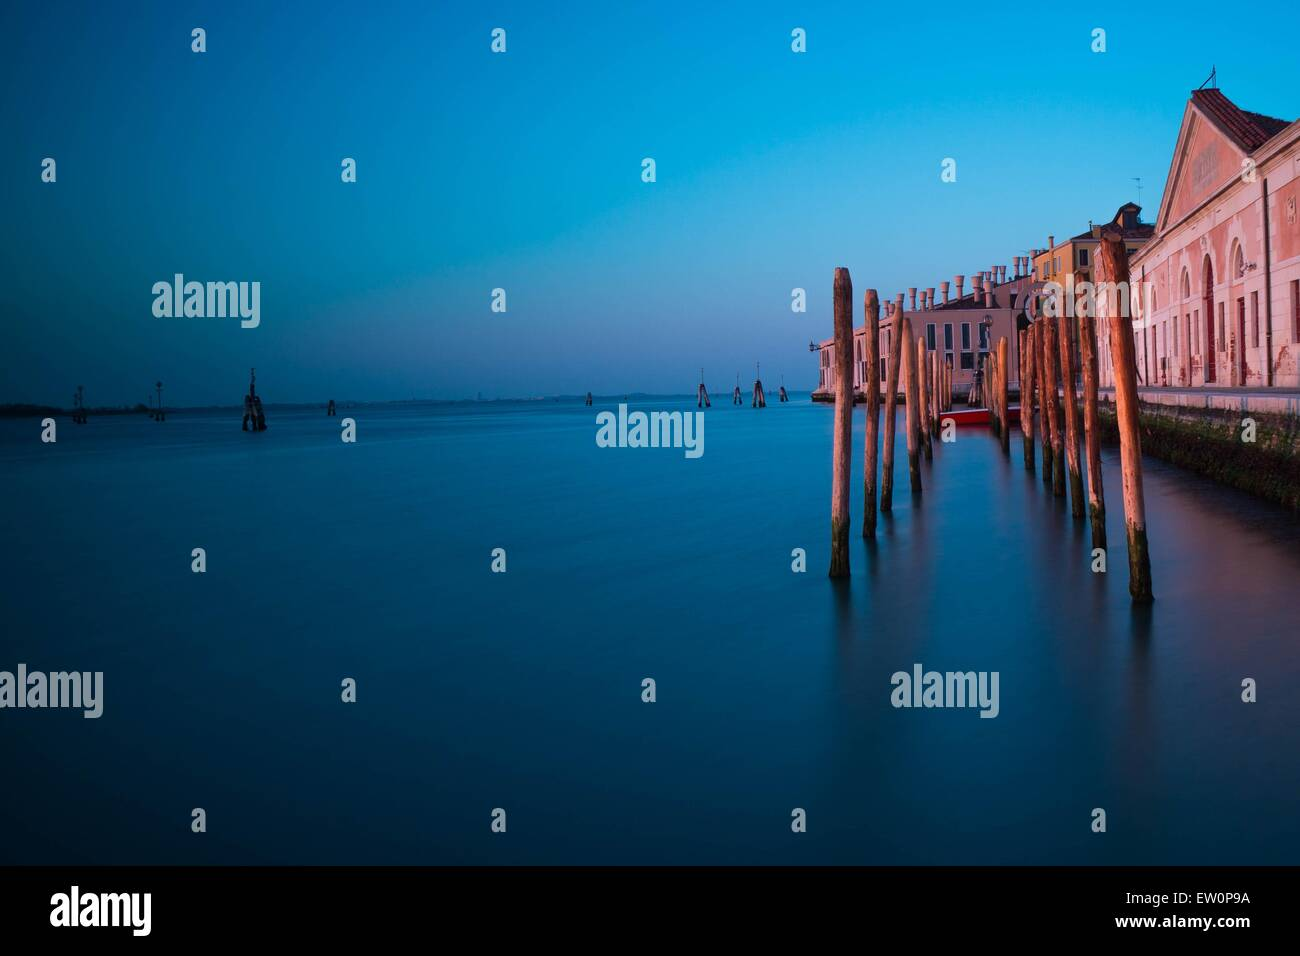 A Venice gondola / boat dock, shot with a ND filter during sunset. - Stock Image